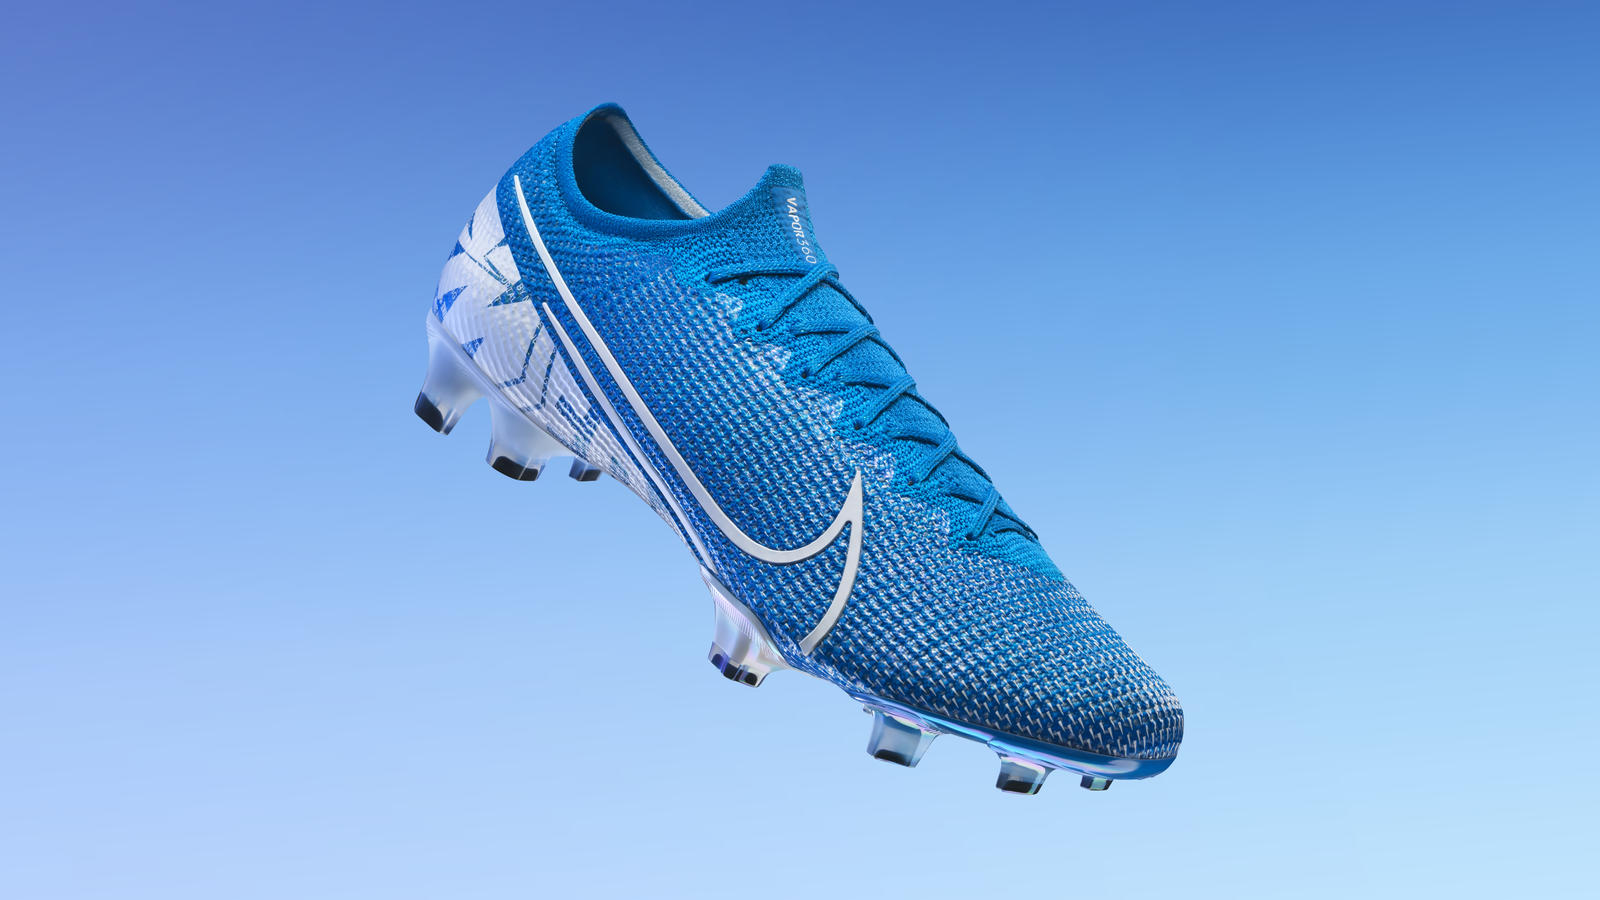 outlet store 434dd c2ccb 2019 Mercurial 360 Official Images and Release Date - Nike News